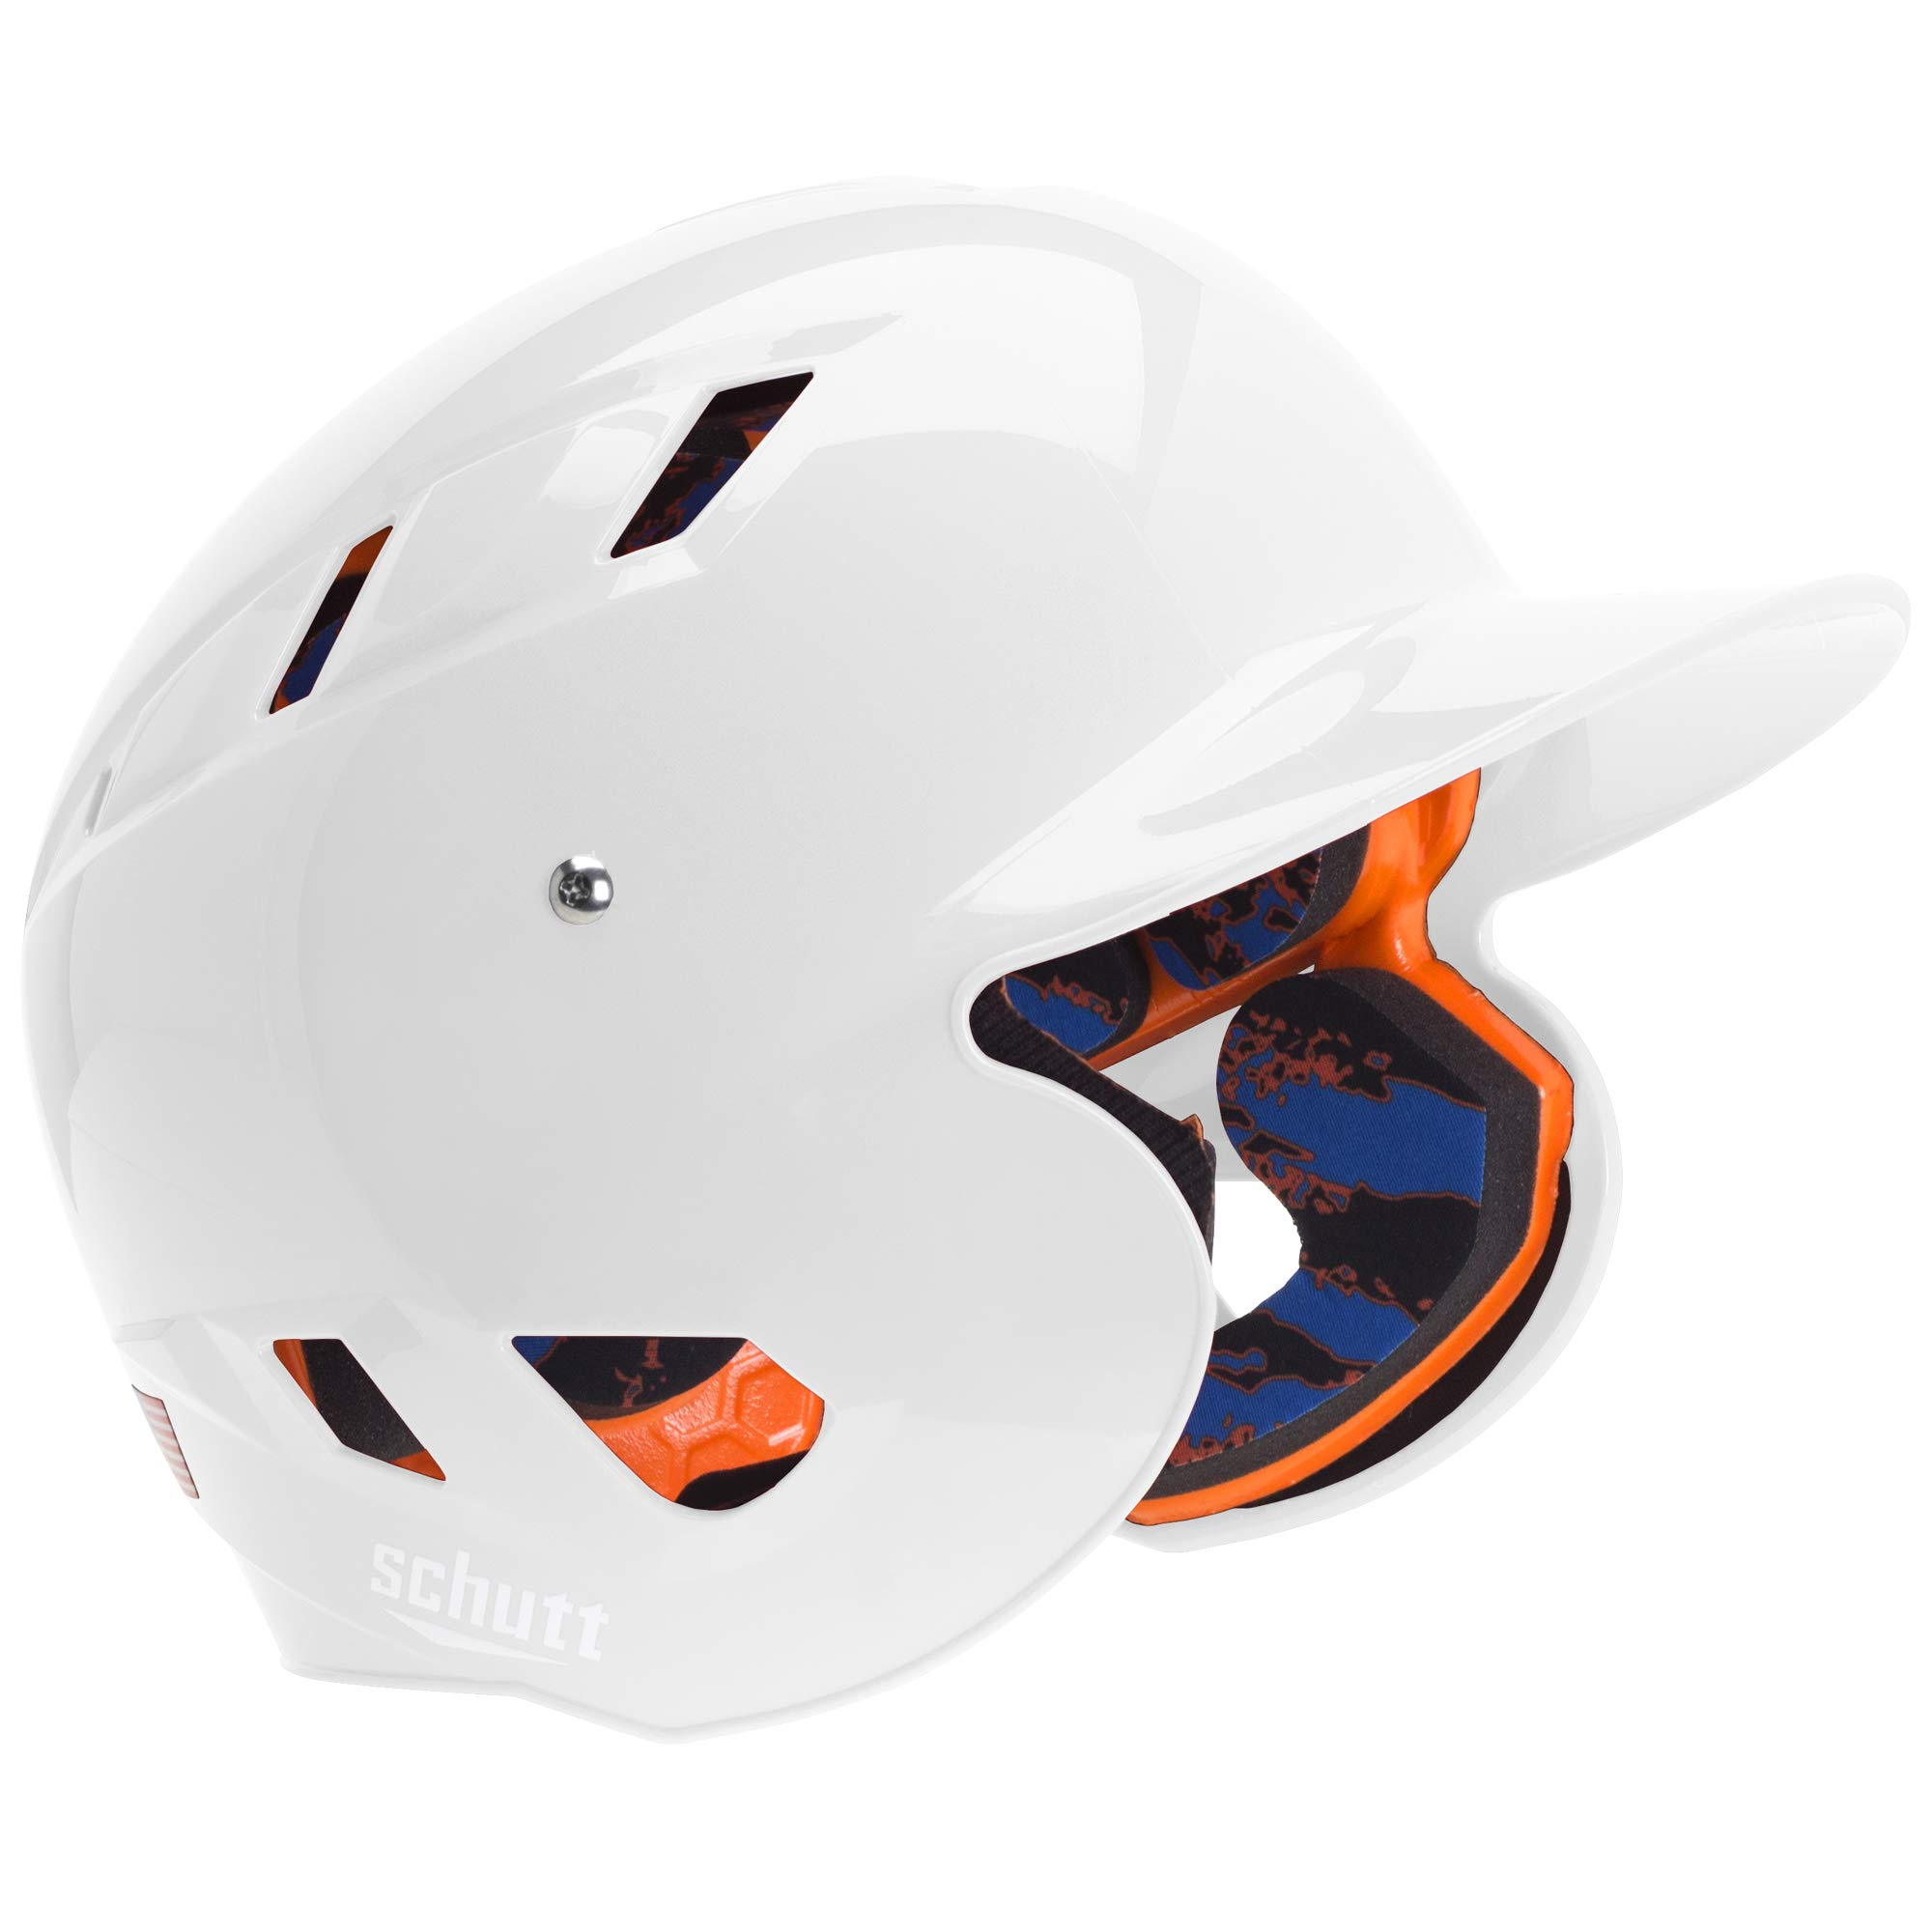 Schutt Sports AiR 5.6 Baseball Batter's Helmet by Schutt